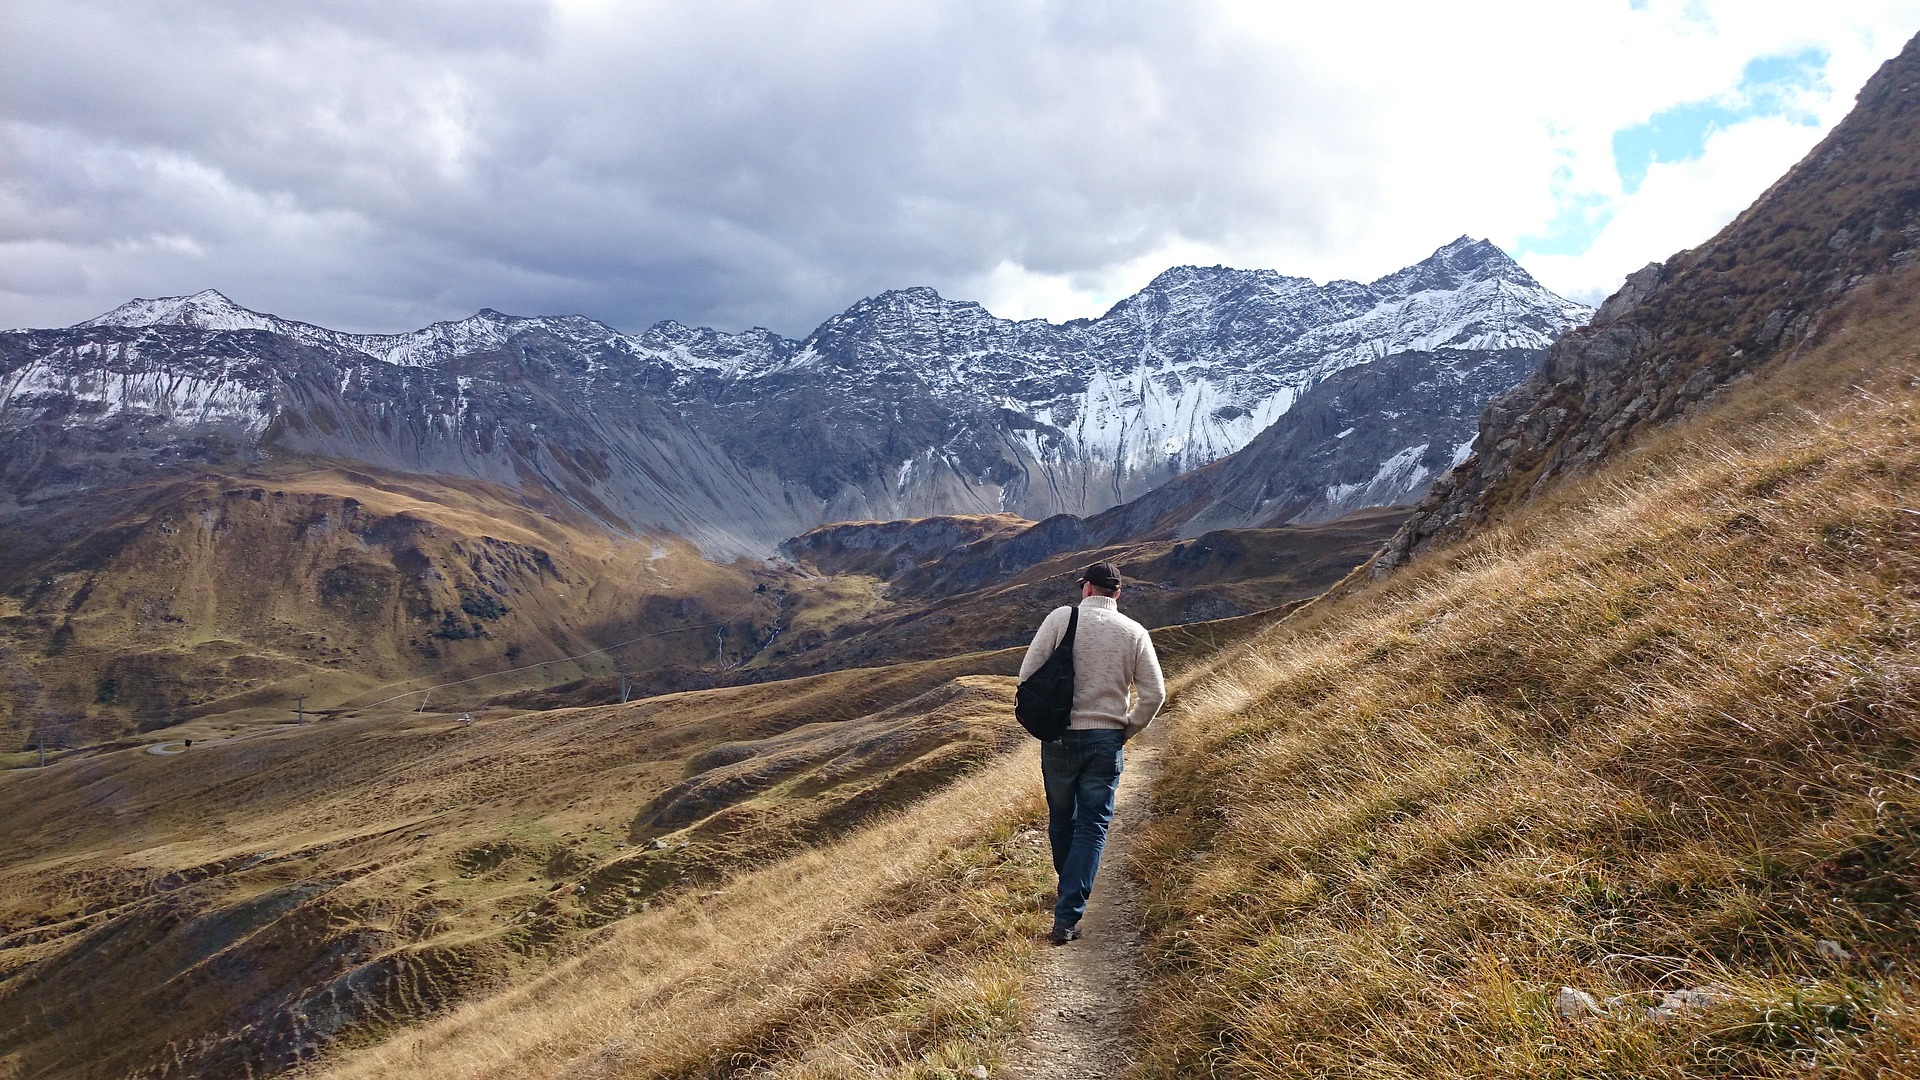 Man walking a trail in the mountains